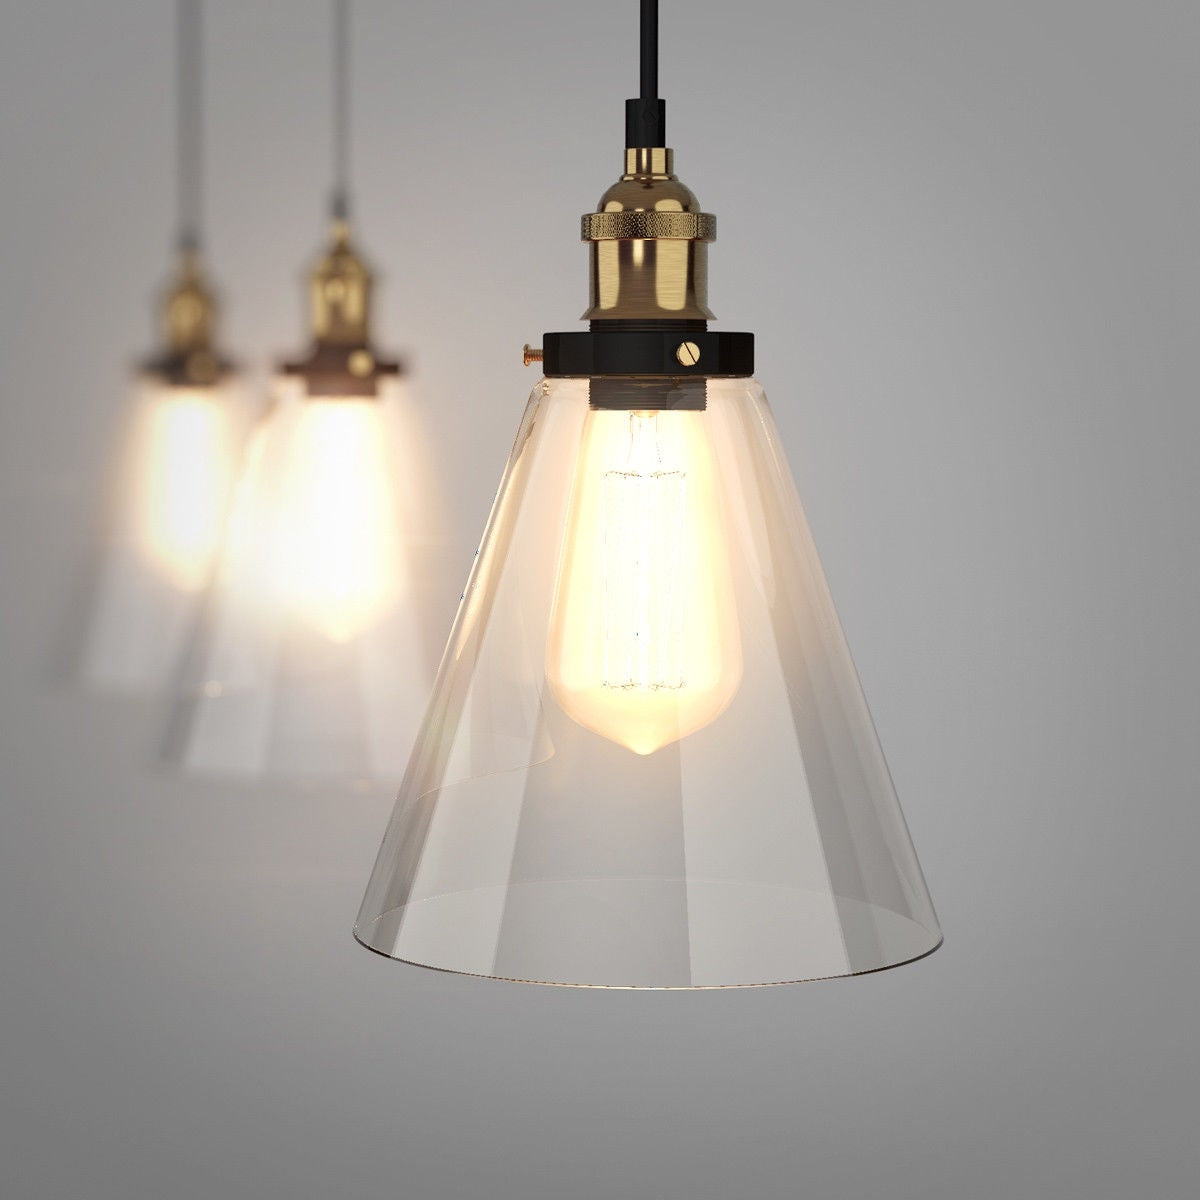 Vintage Edison 1 Light Bowl Pendants For Well Liked Gymax Vintage Style Industrial Edison Ceiling Pendant Glass Hanging Light  1 Light Bulb – As Pic (View 8 of 25)